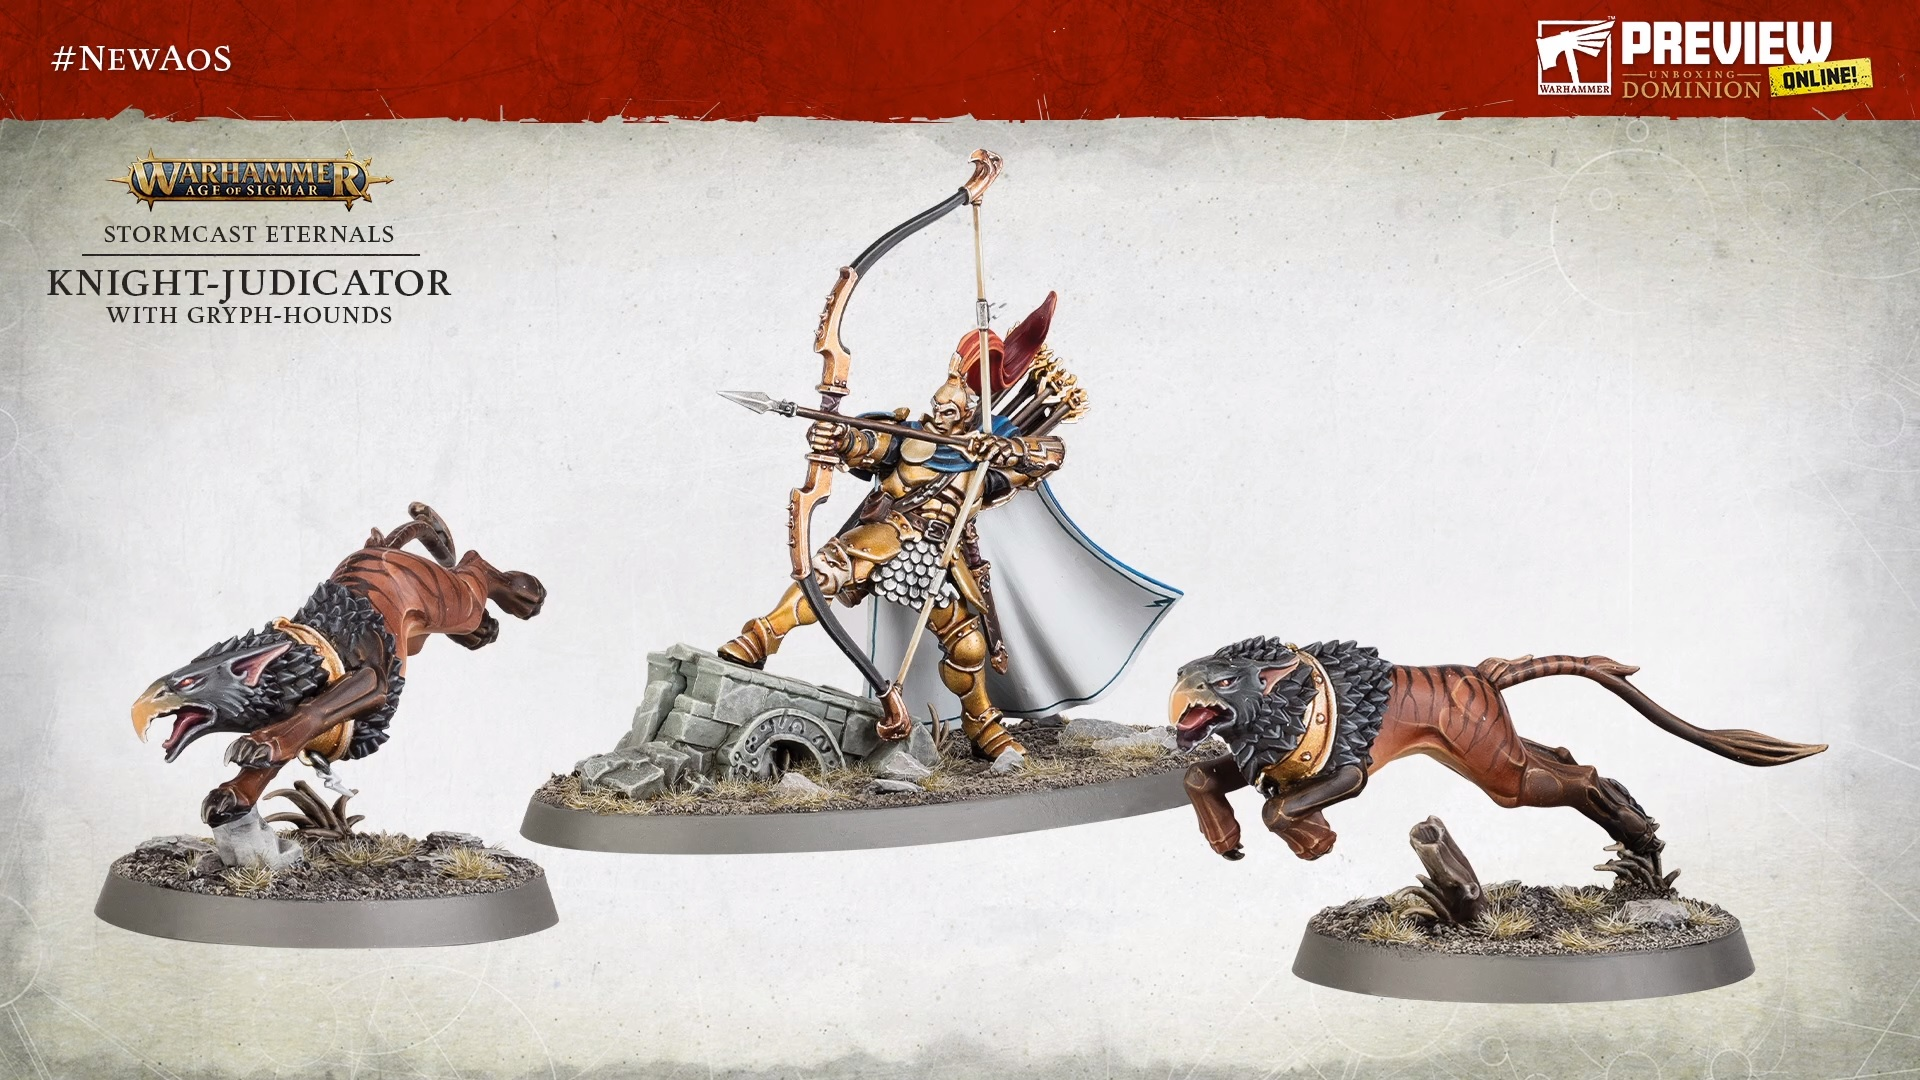 Knight-Judicator With Gryph-Hounds - Warhammer Age Of Sigmar